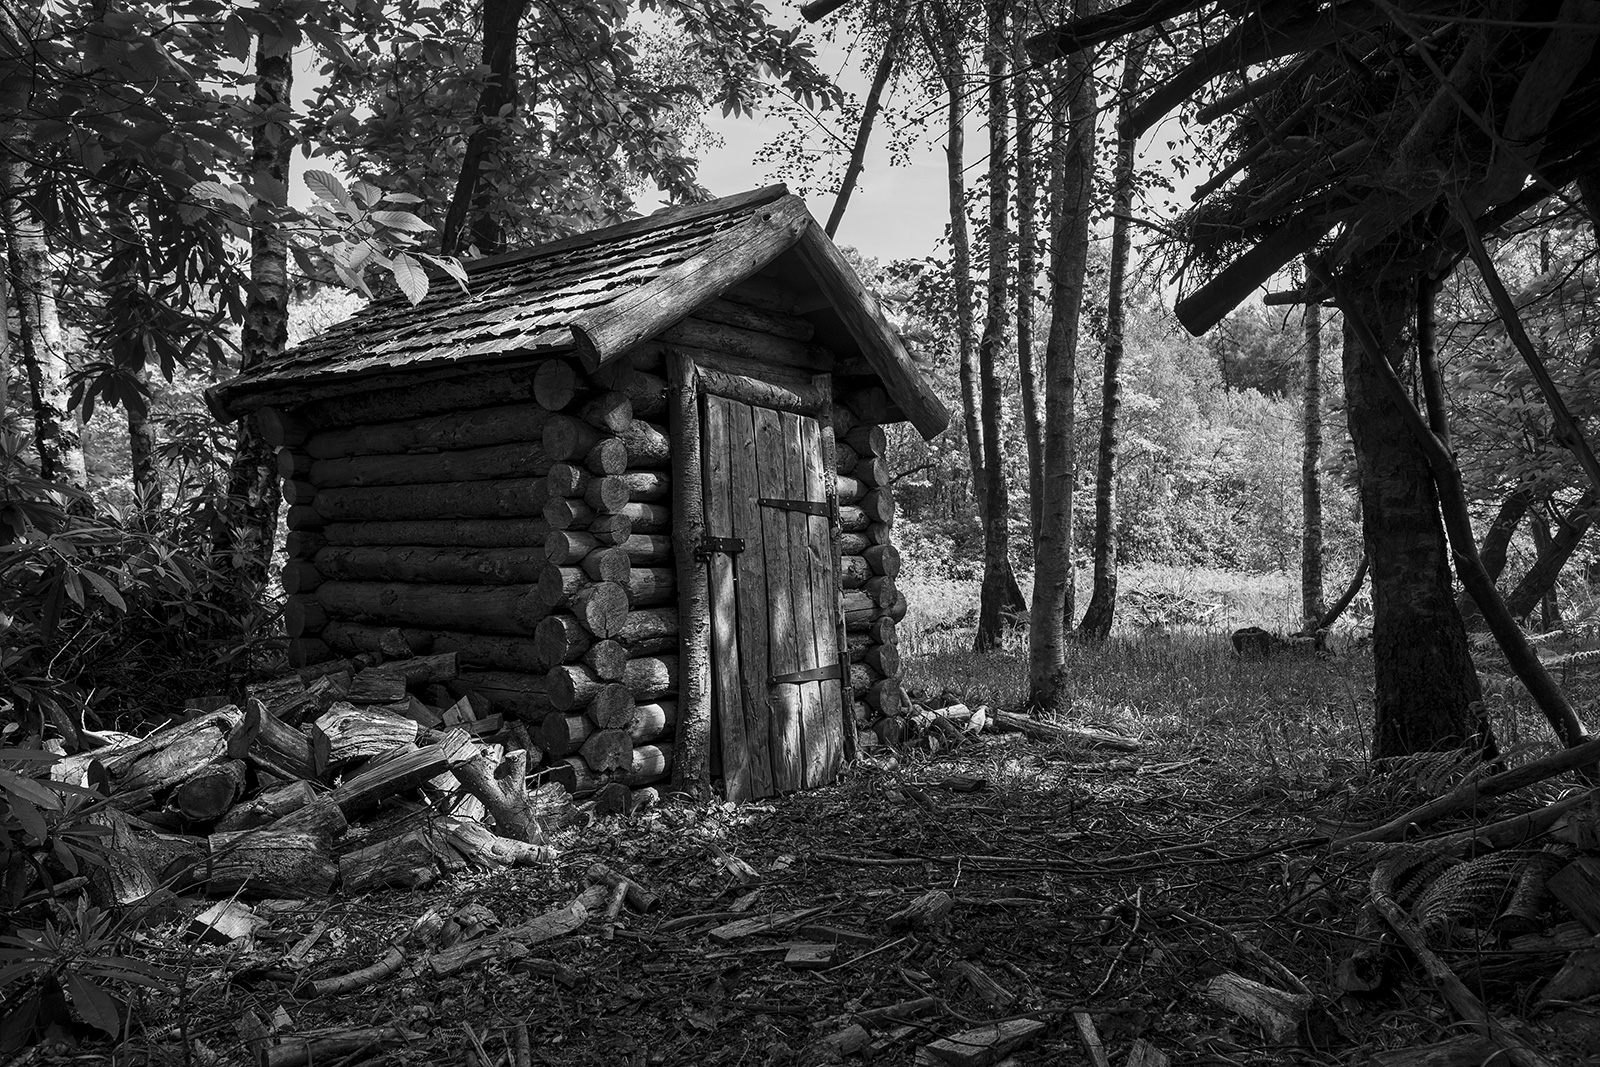 Wooden log built shed cabin inBirch and Chestnut woodland with dappled sunlight, rural arboriculture photograph Ashdown Forest West Sussex UK ©P. Maton 2019 eyeteeth.net